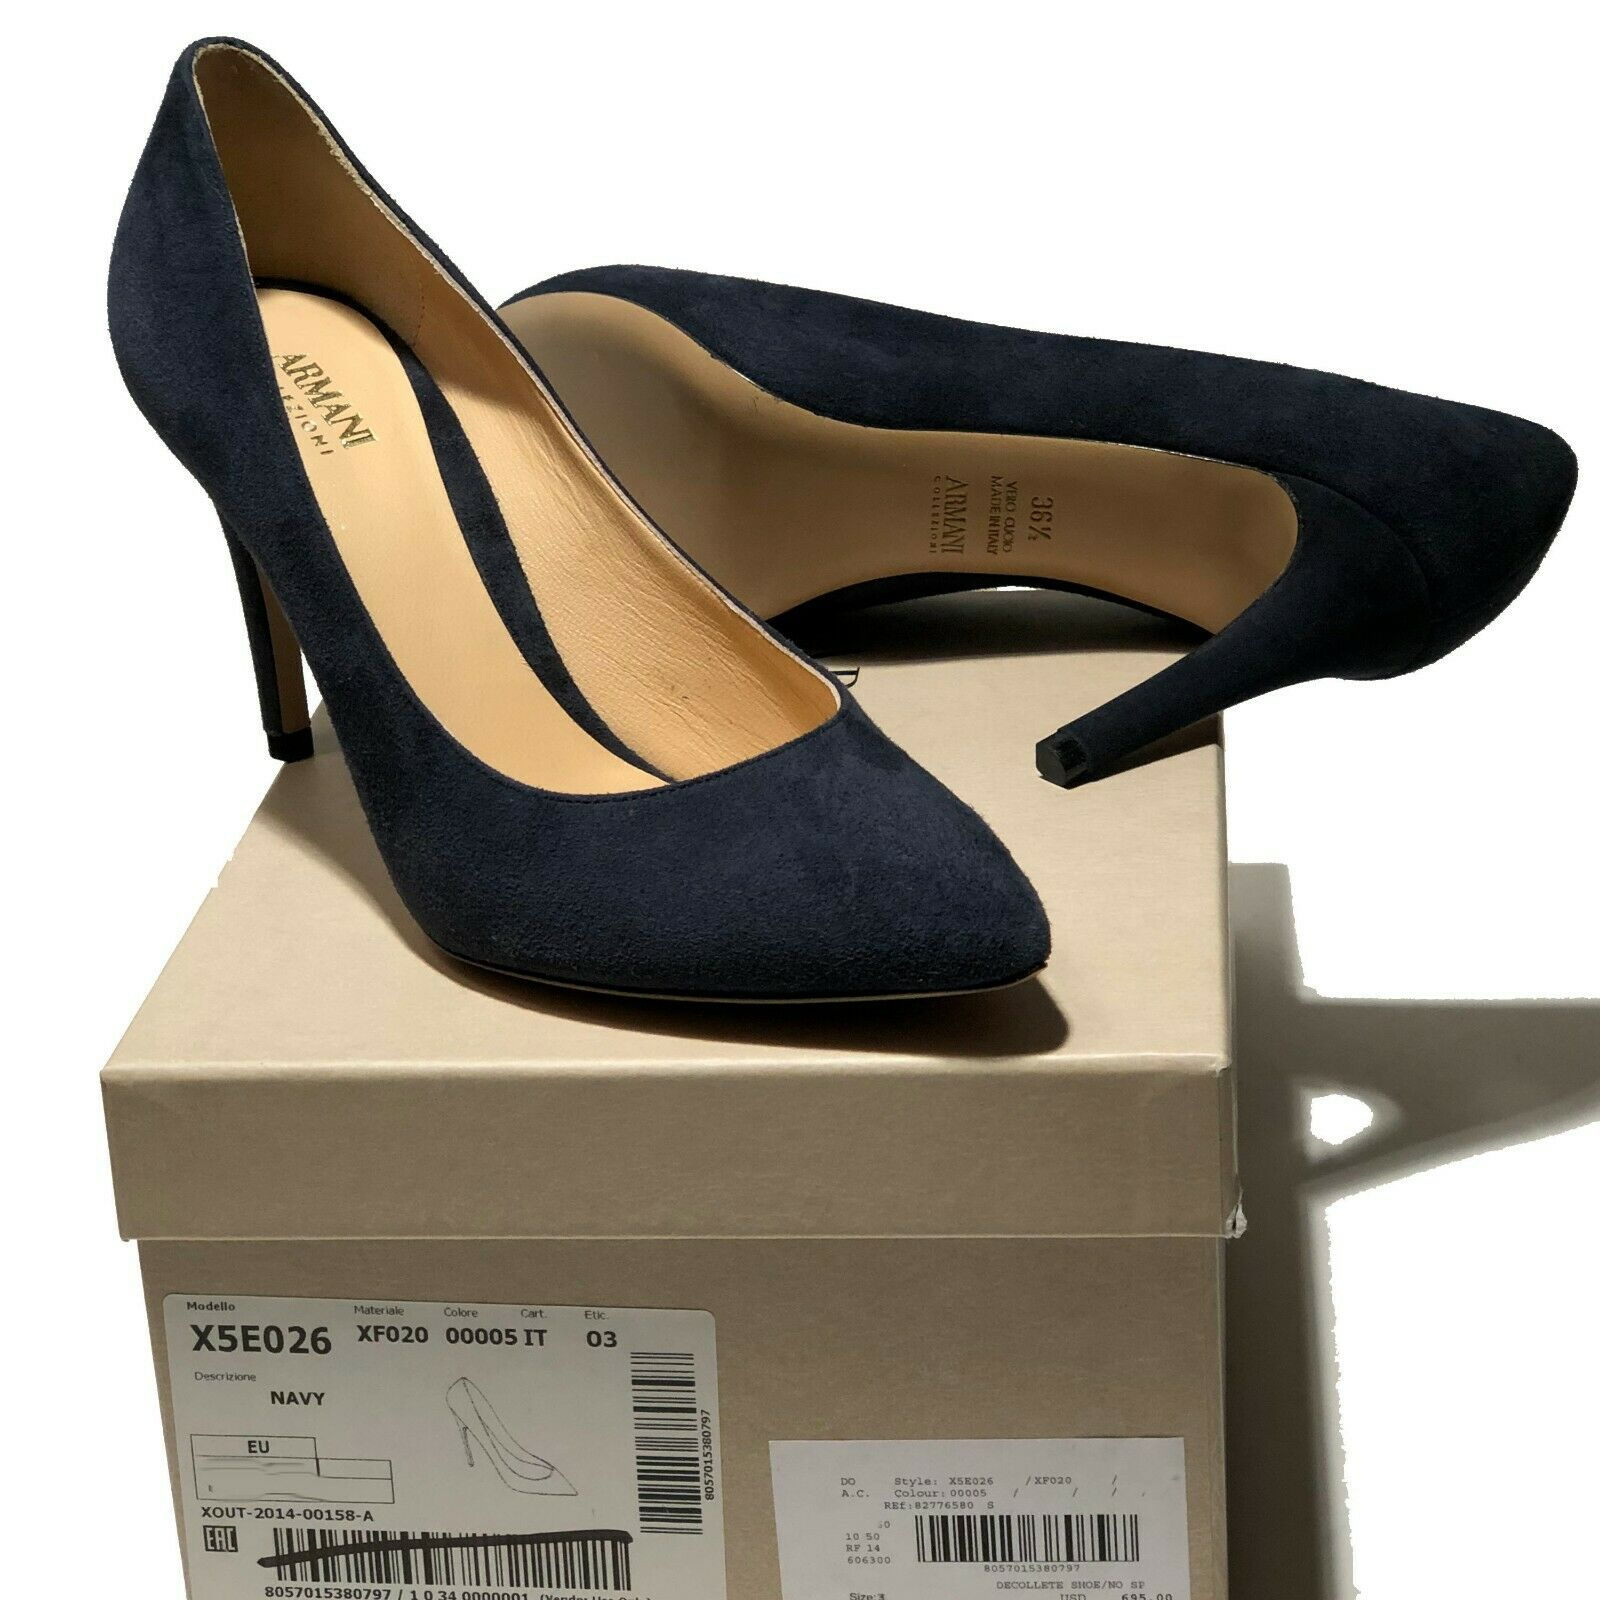 695 NEW Armani Women's Navy Suede Leather 6 36 Pointed Toe Stiletto Heels Pumps